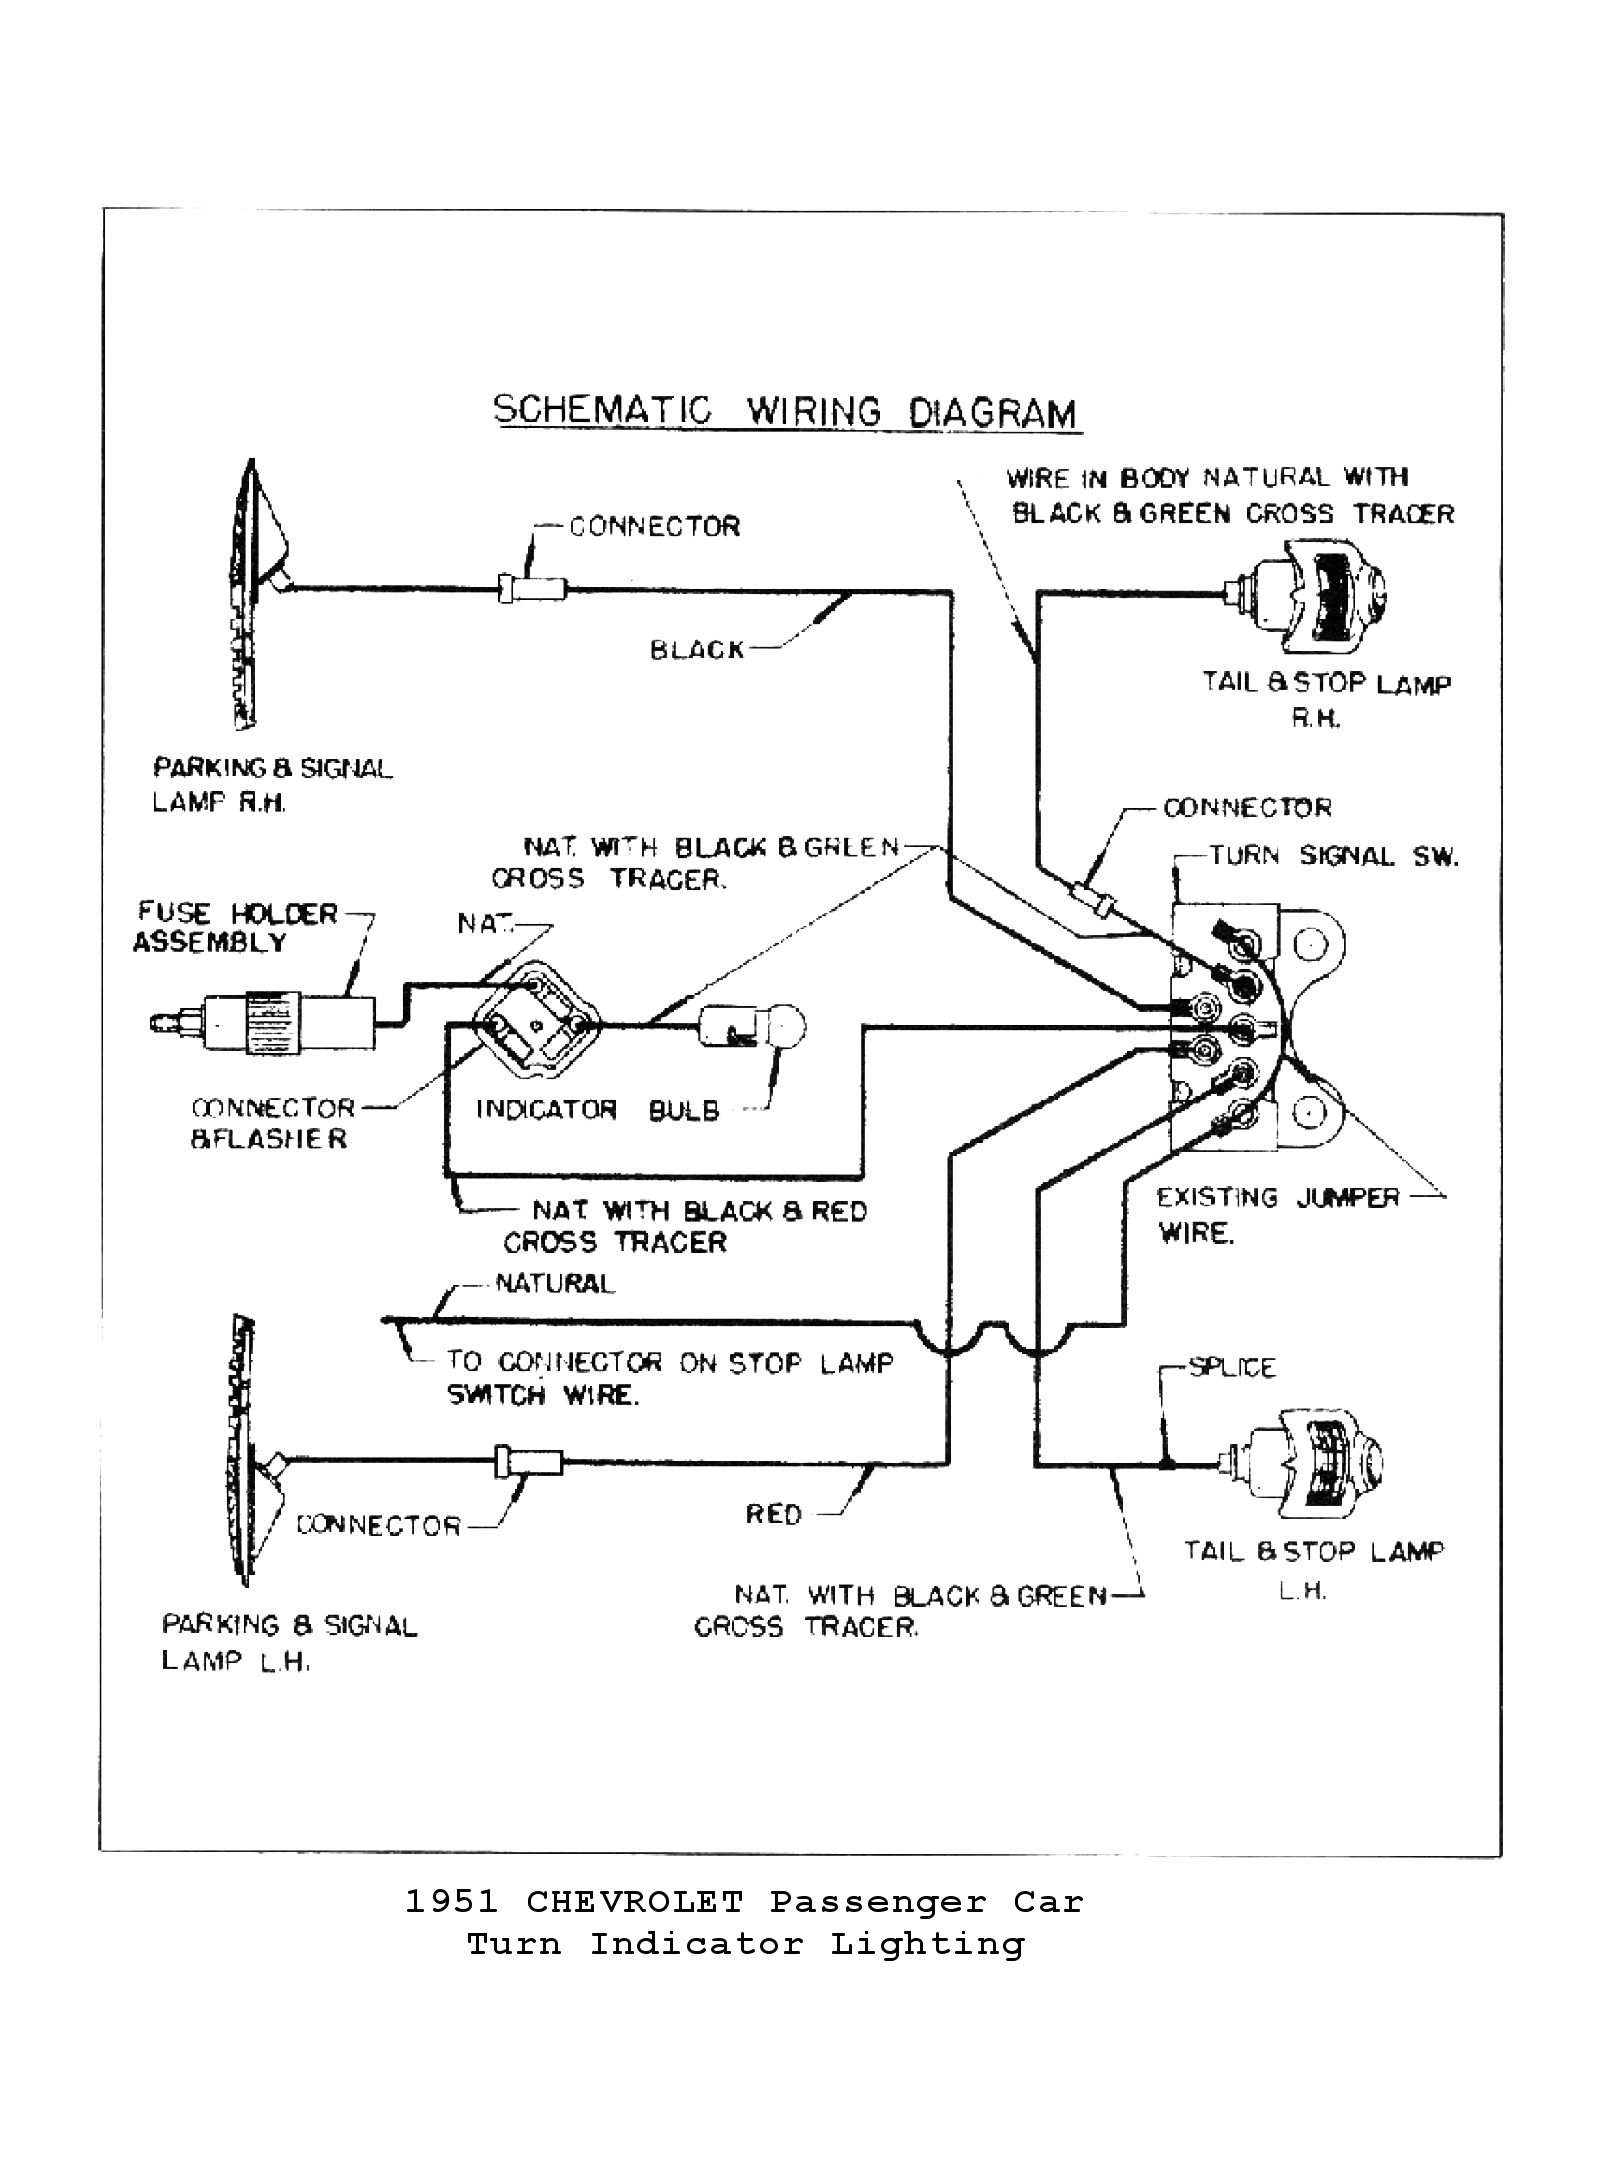 1972 Chevrolet C10 Wiring Diagram